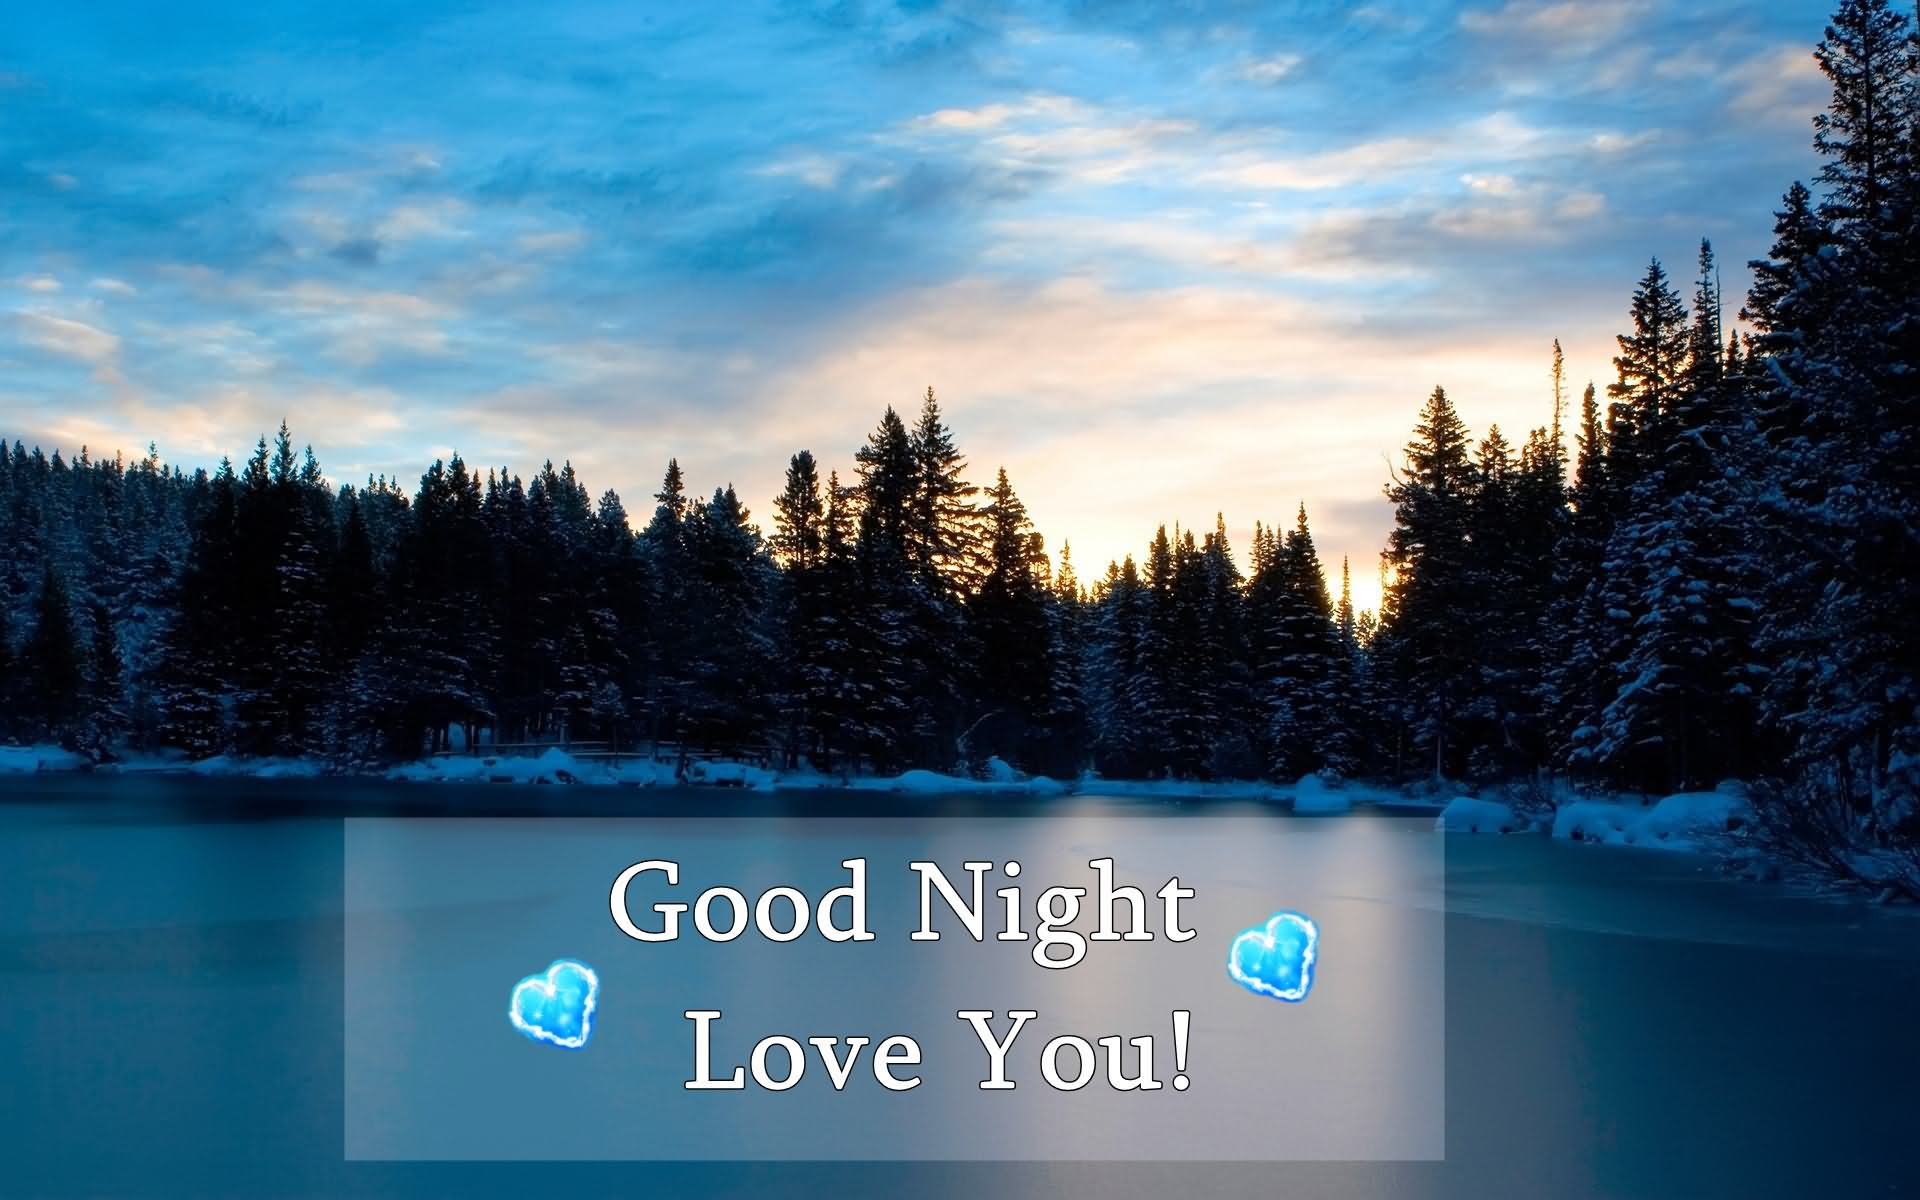 Wallpaper I Love You Good Night : 15 Awesome Good Night Love Images